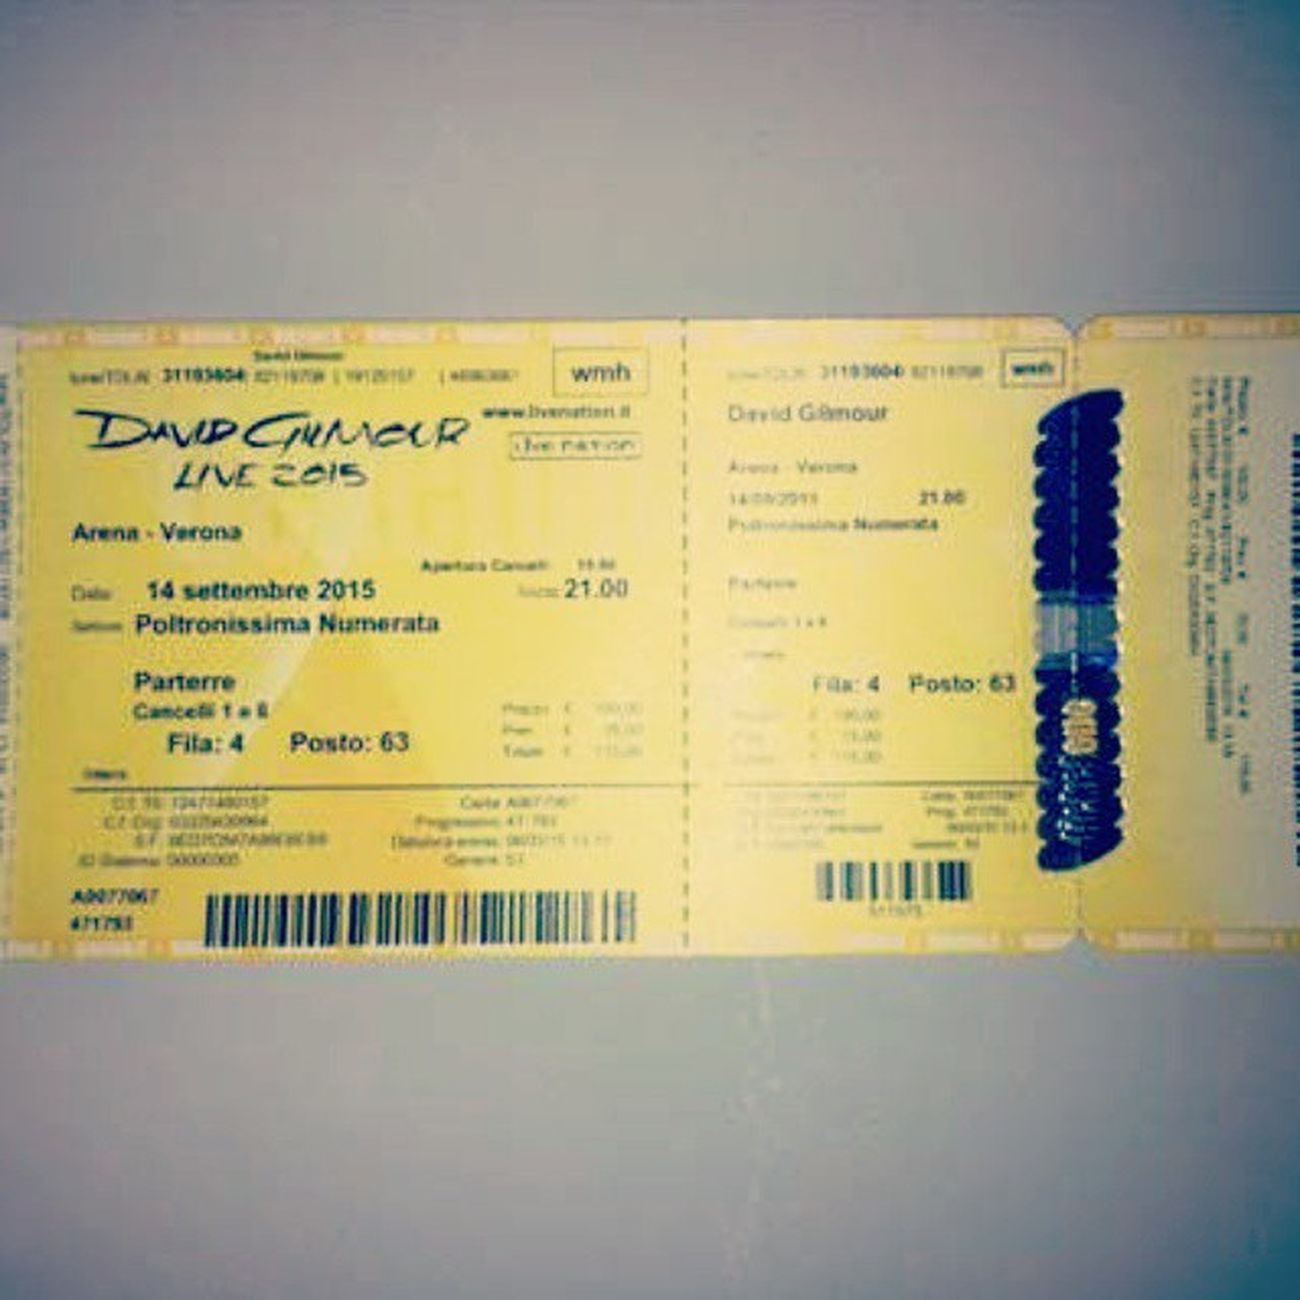 Zio David aspettami !! Arenadiverona David Gilmour Soundofsound Live Concert 2K15 Soundreturn Guitarist Hope Ticketone Like4like L4l Gold Poltronissima Liveatverona